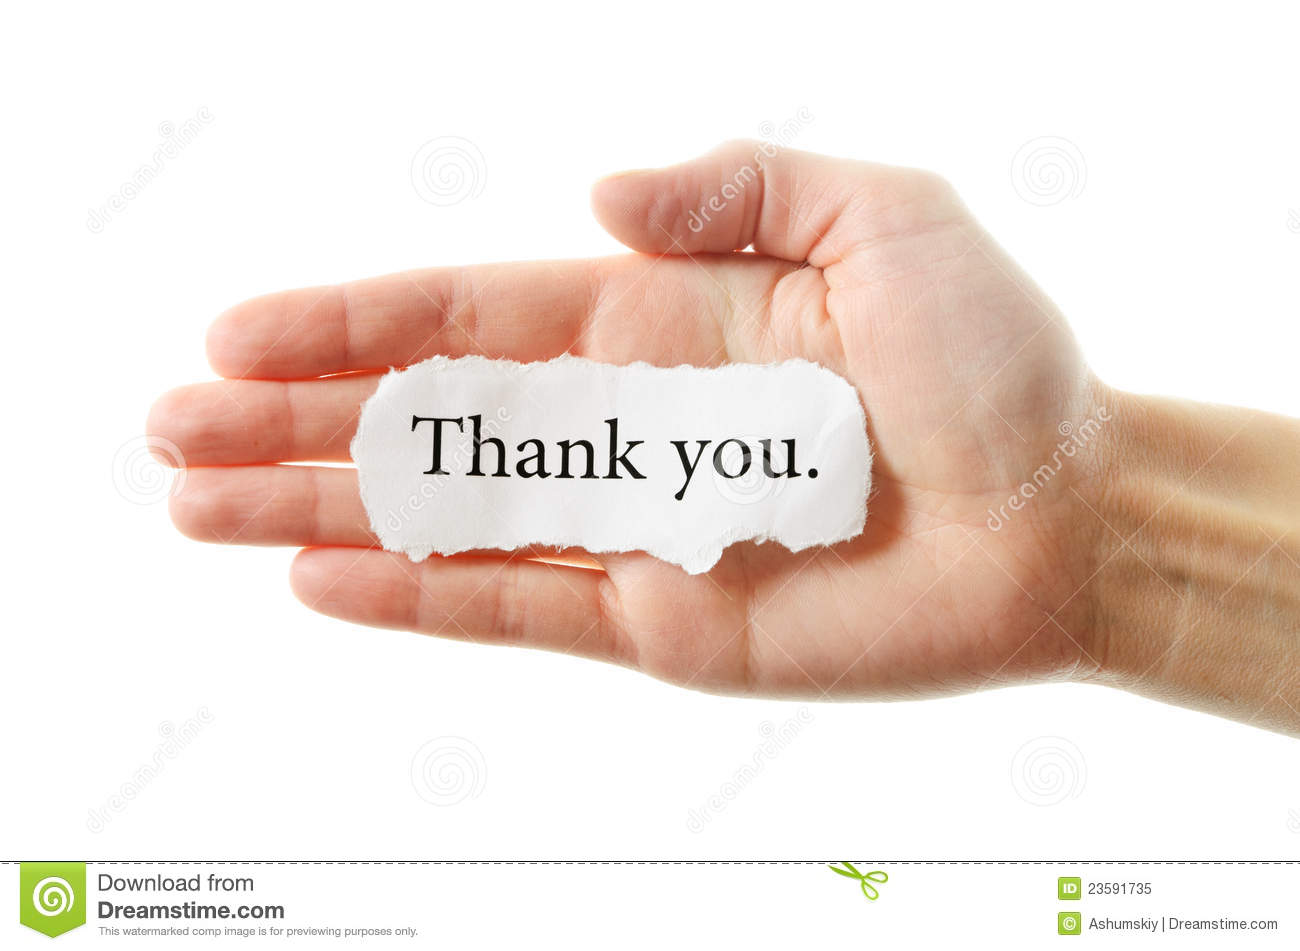 Royalty Free Stock Photo Thank You Image23591735 on Letter U Video Download